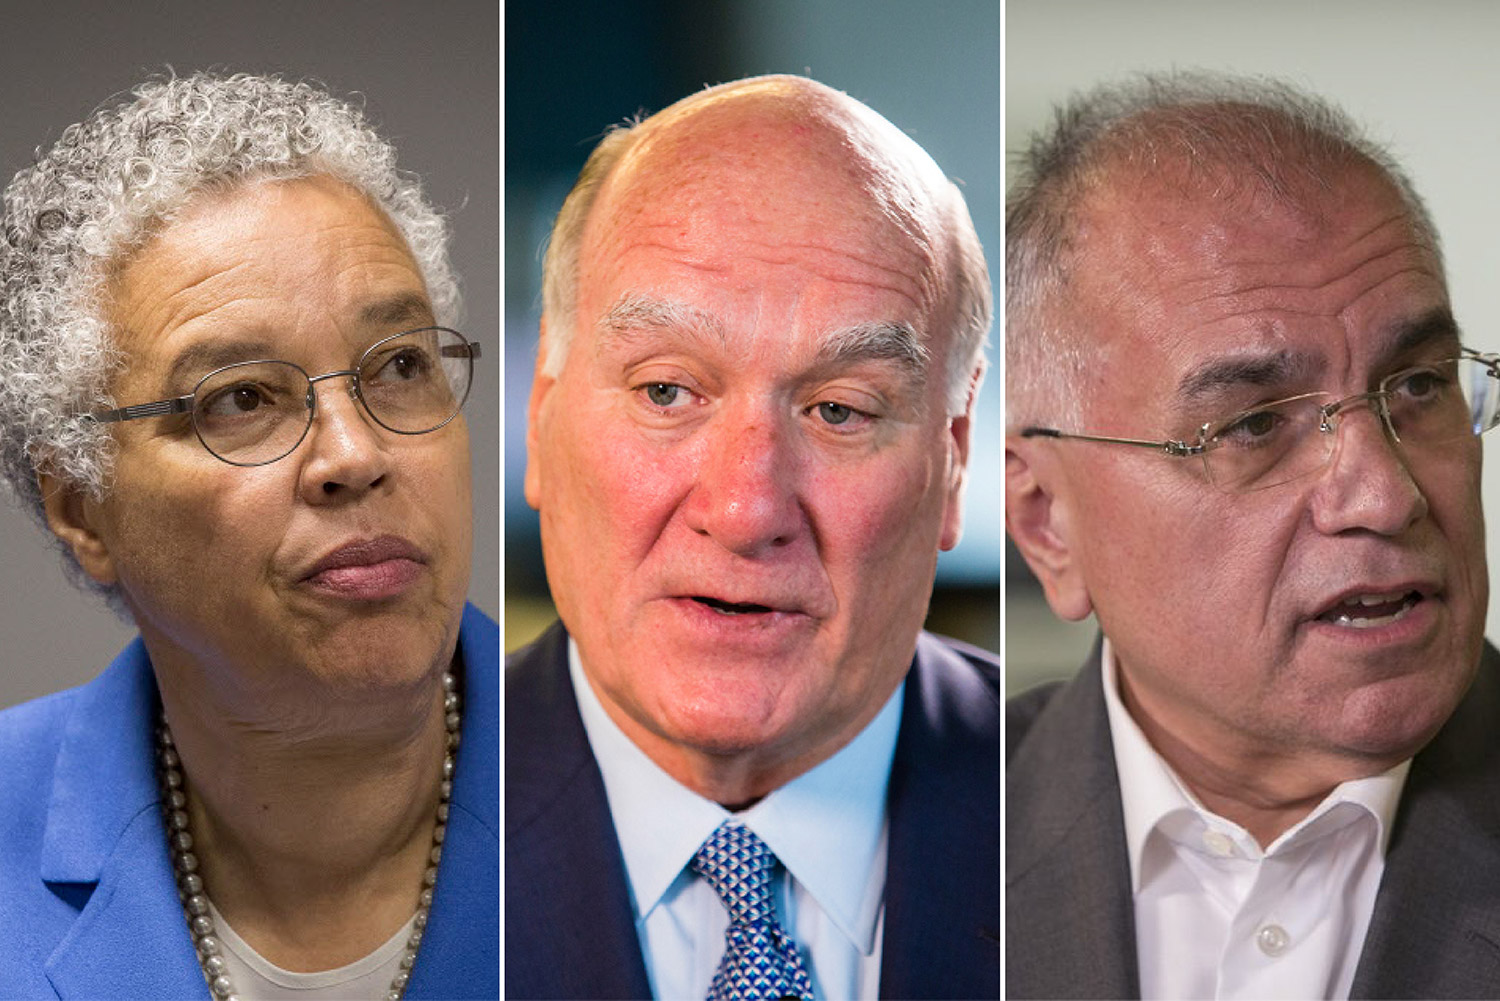 Mayoral hopefuls Toni Preckwinkle (left), Bill Daley and Gery Chico. (Preckwinkle and Chico: Rich Hein/Chicago Sun-Times; Daley: James Foster/Chicago Sun-Times)